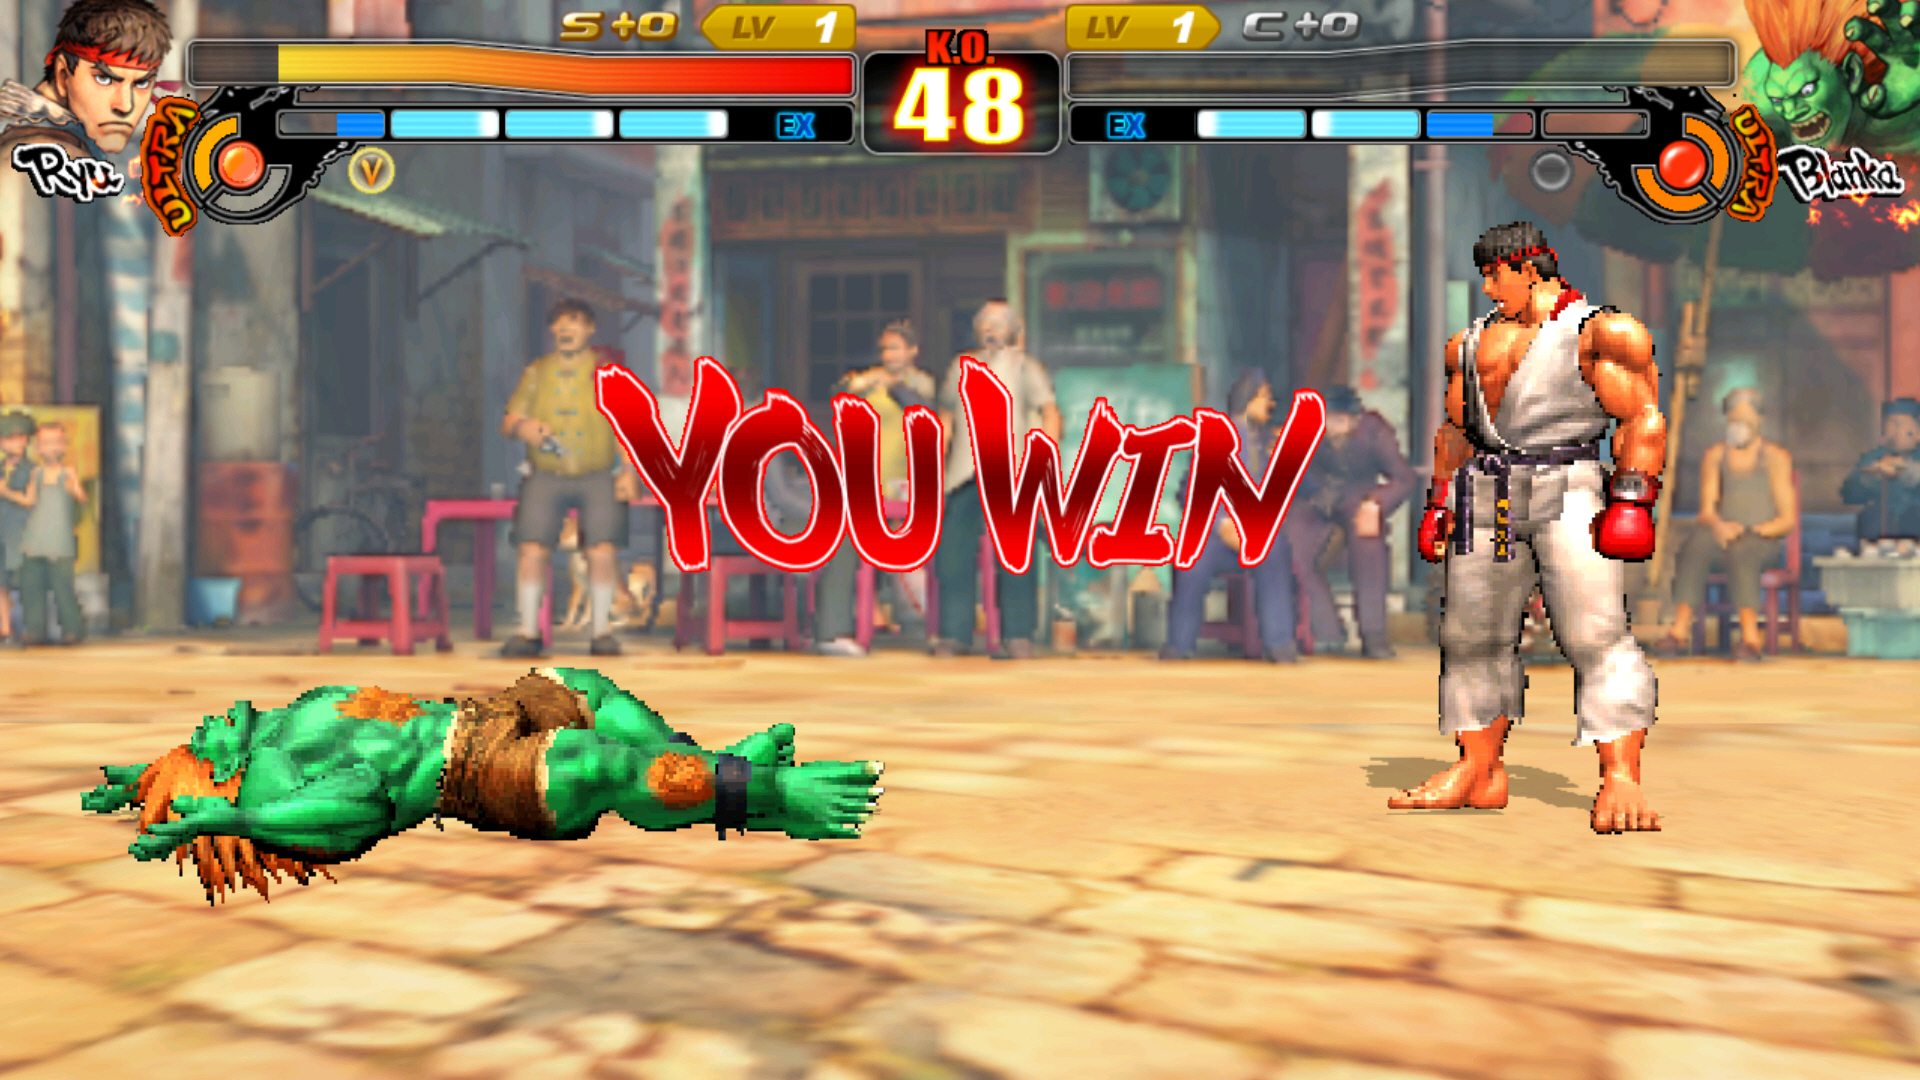 Street Fighter IV Arena Receives Some New Screenshots